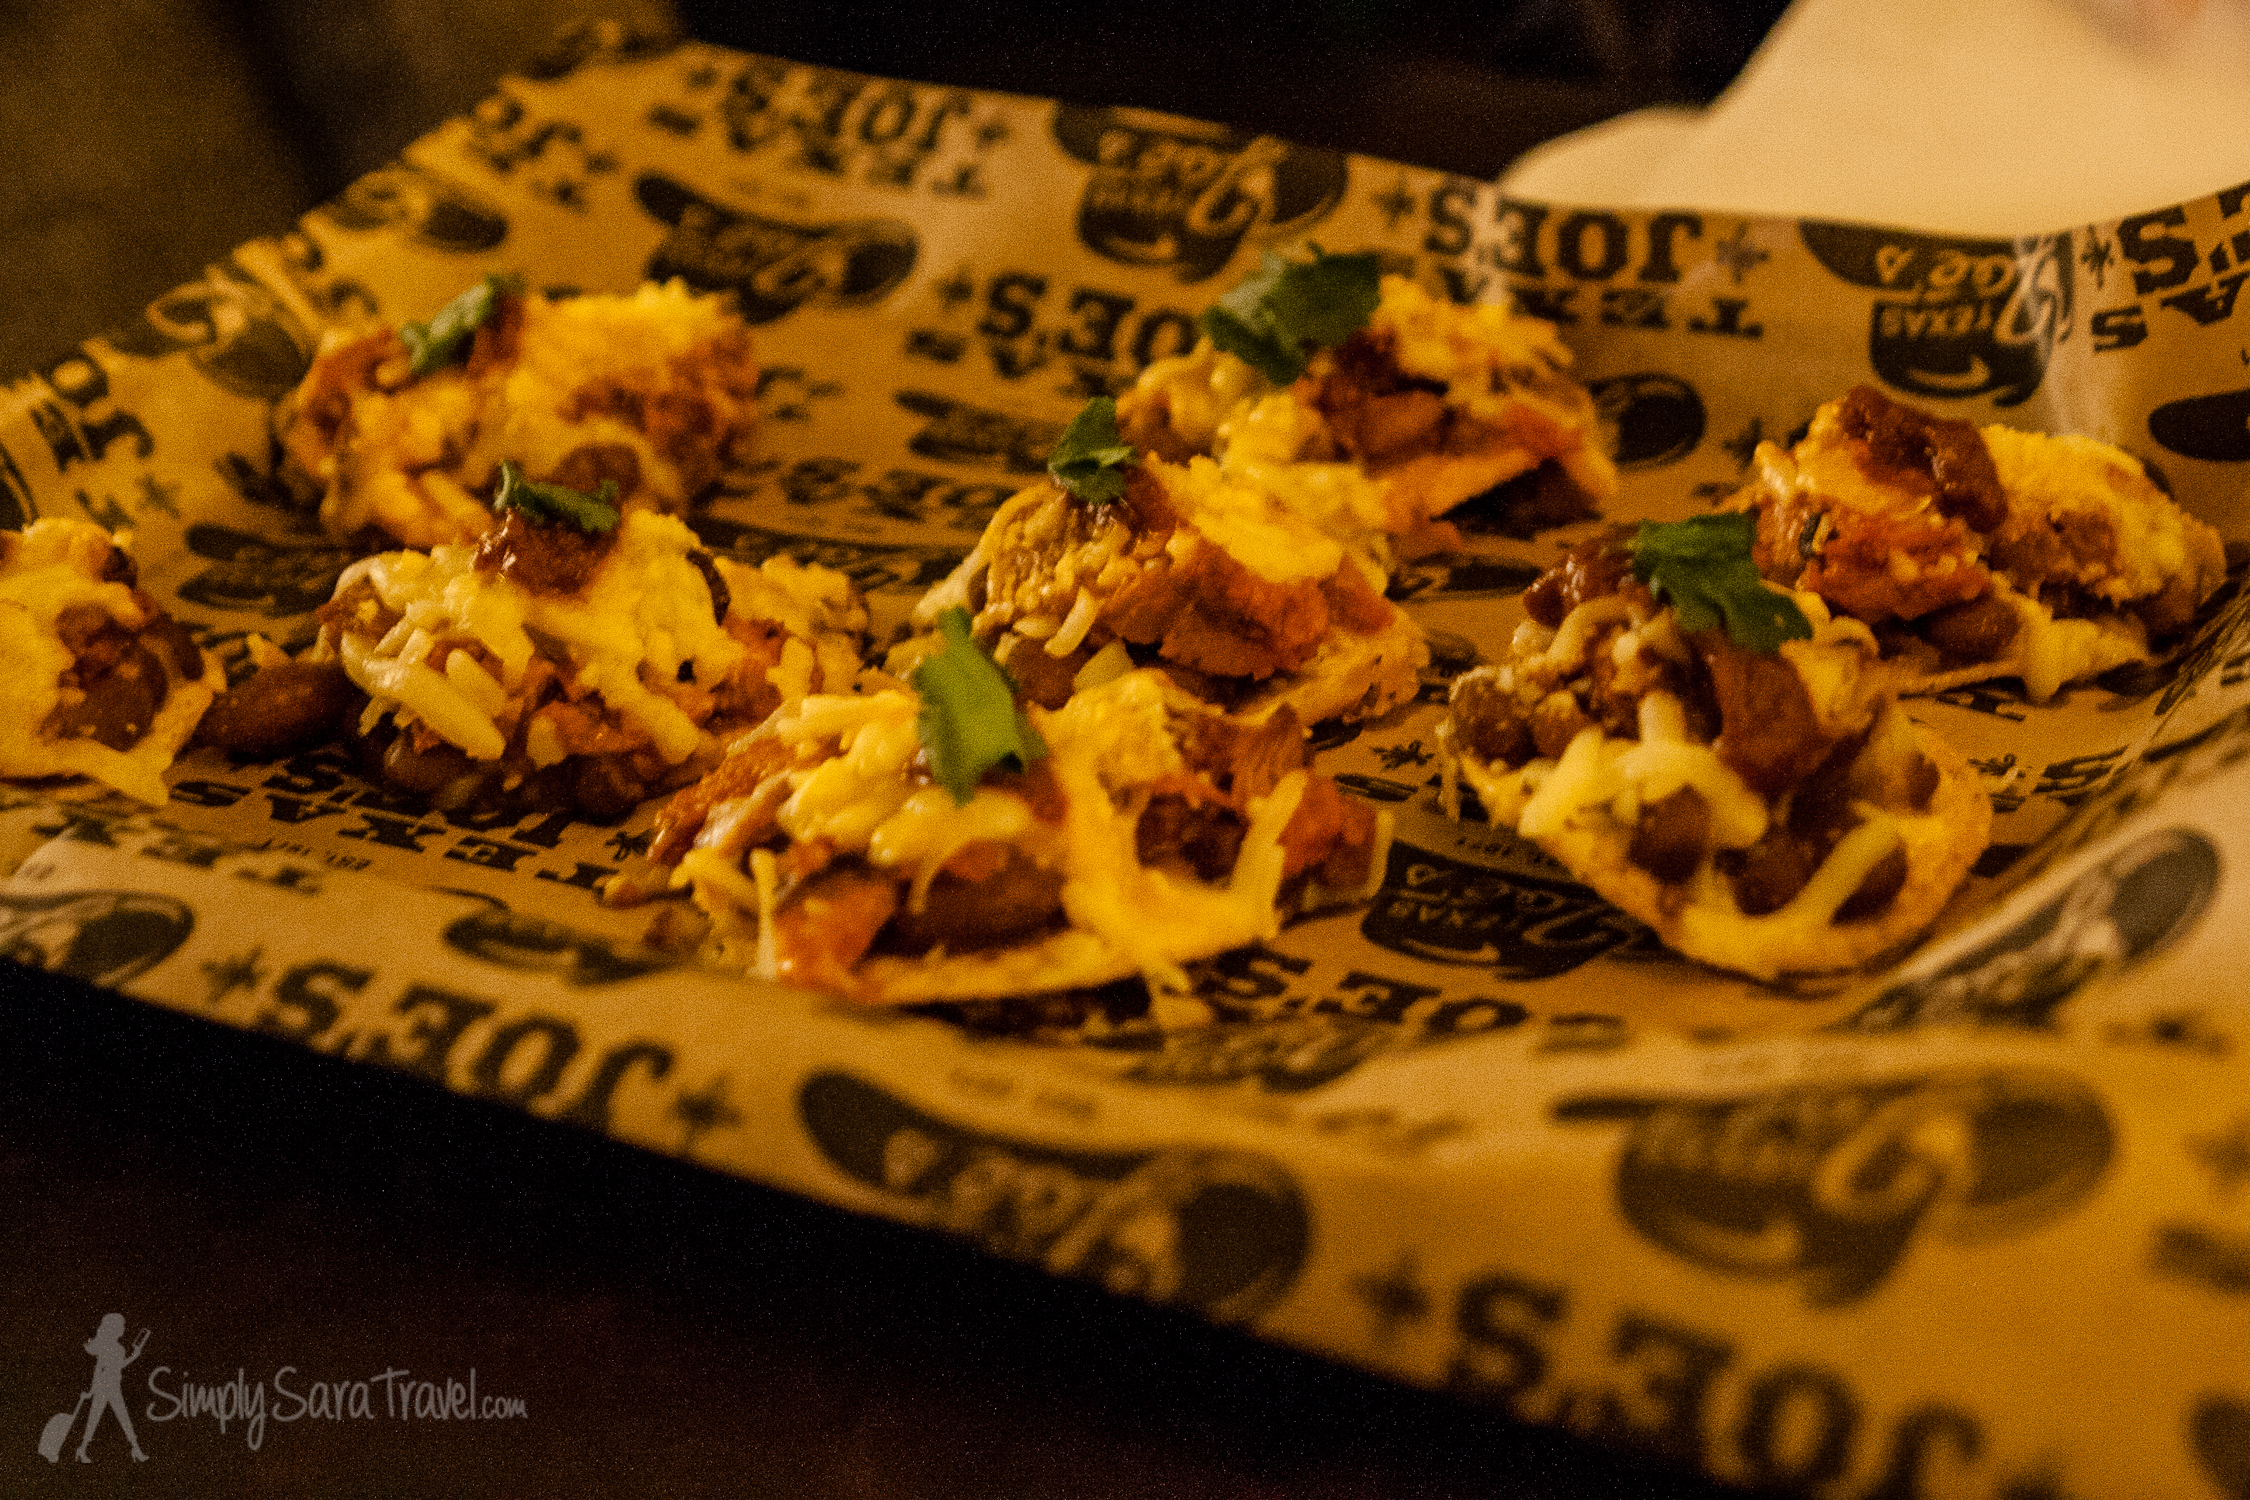 The food here is yummy too. Check out these unusual nachos we got as a snack. Small but filling!